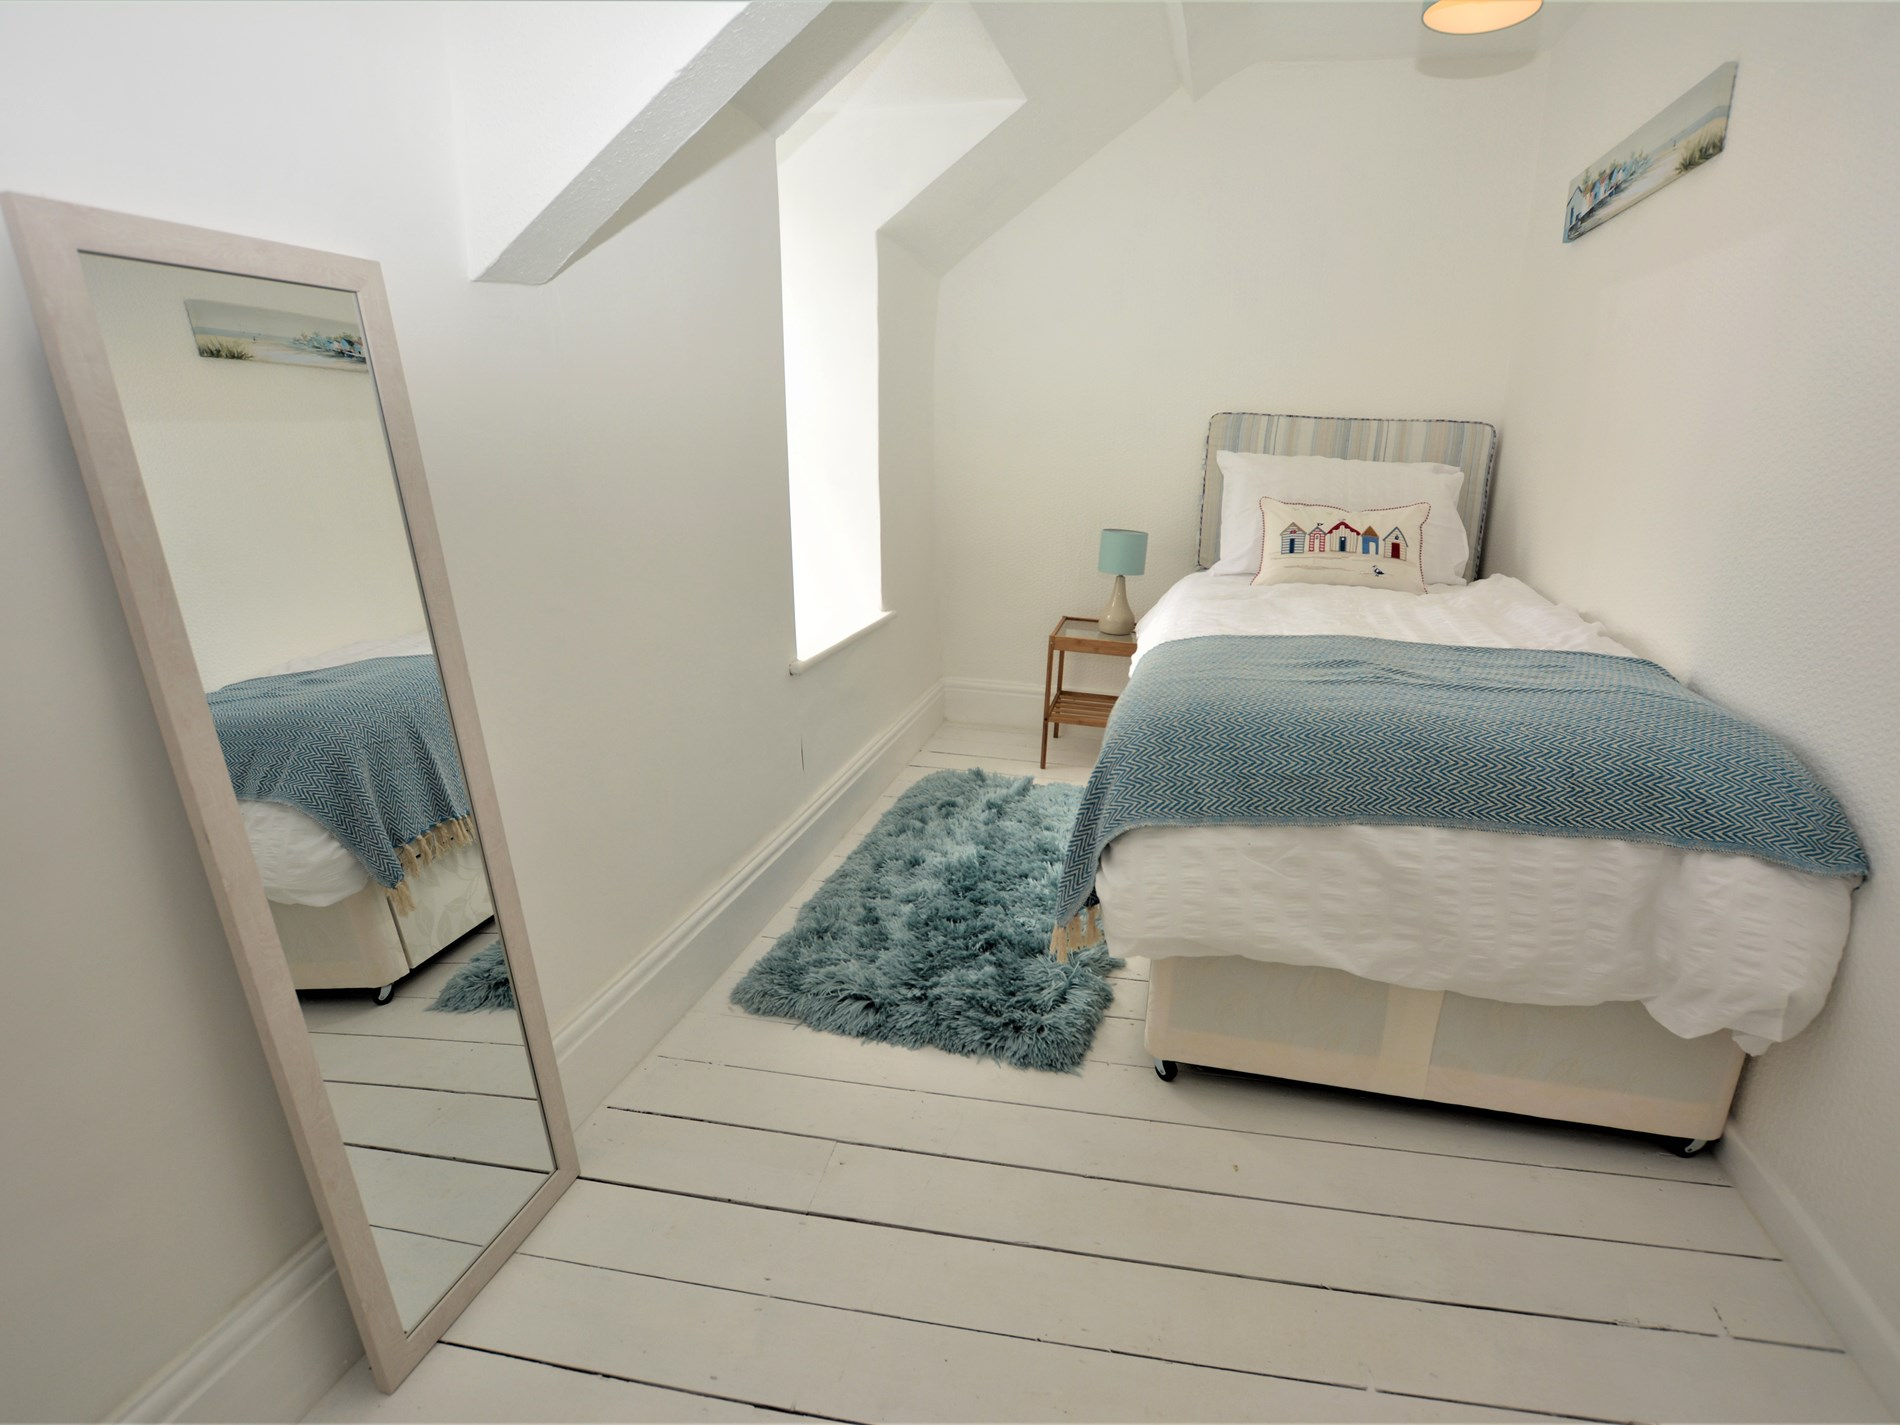 2 Bedroom Cottage in Pwllheli, Snowdonia, North Wales and Cheshire